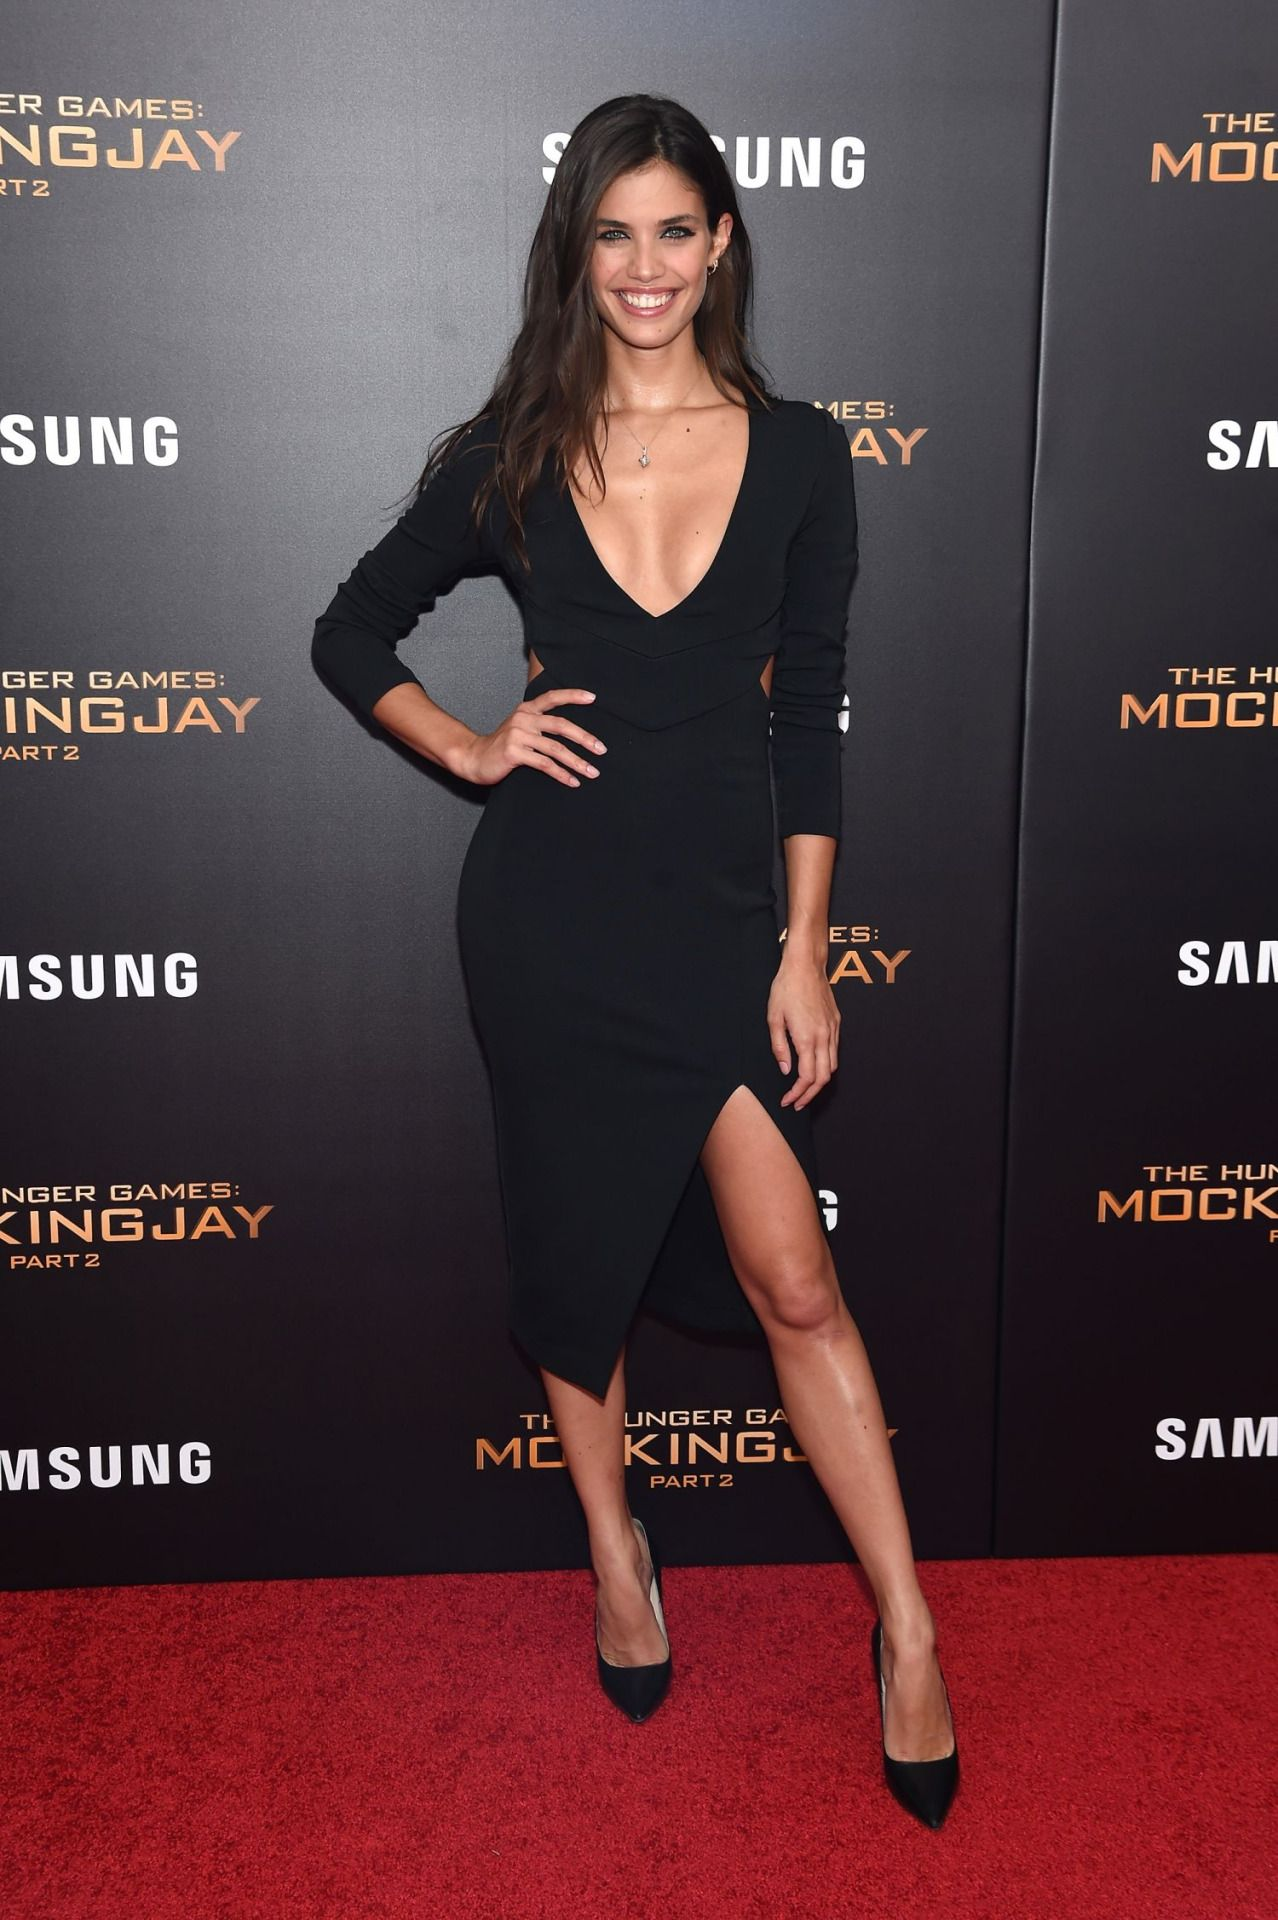 Sara sampaio at the premiere of the killing of a sacred deer in cannes nude (53 image)